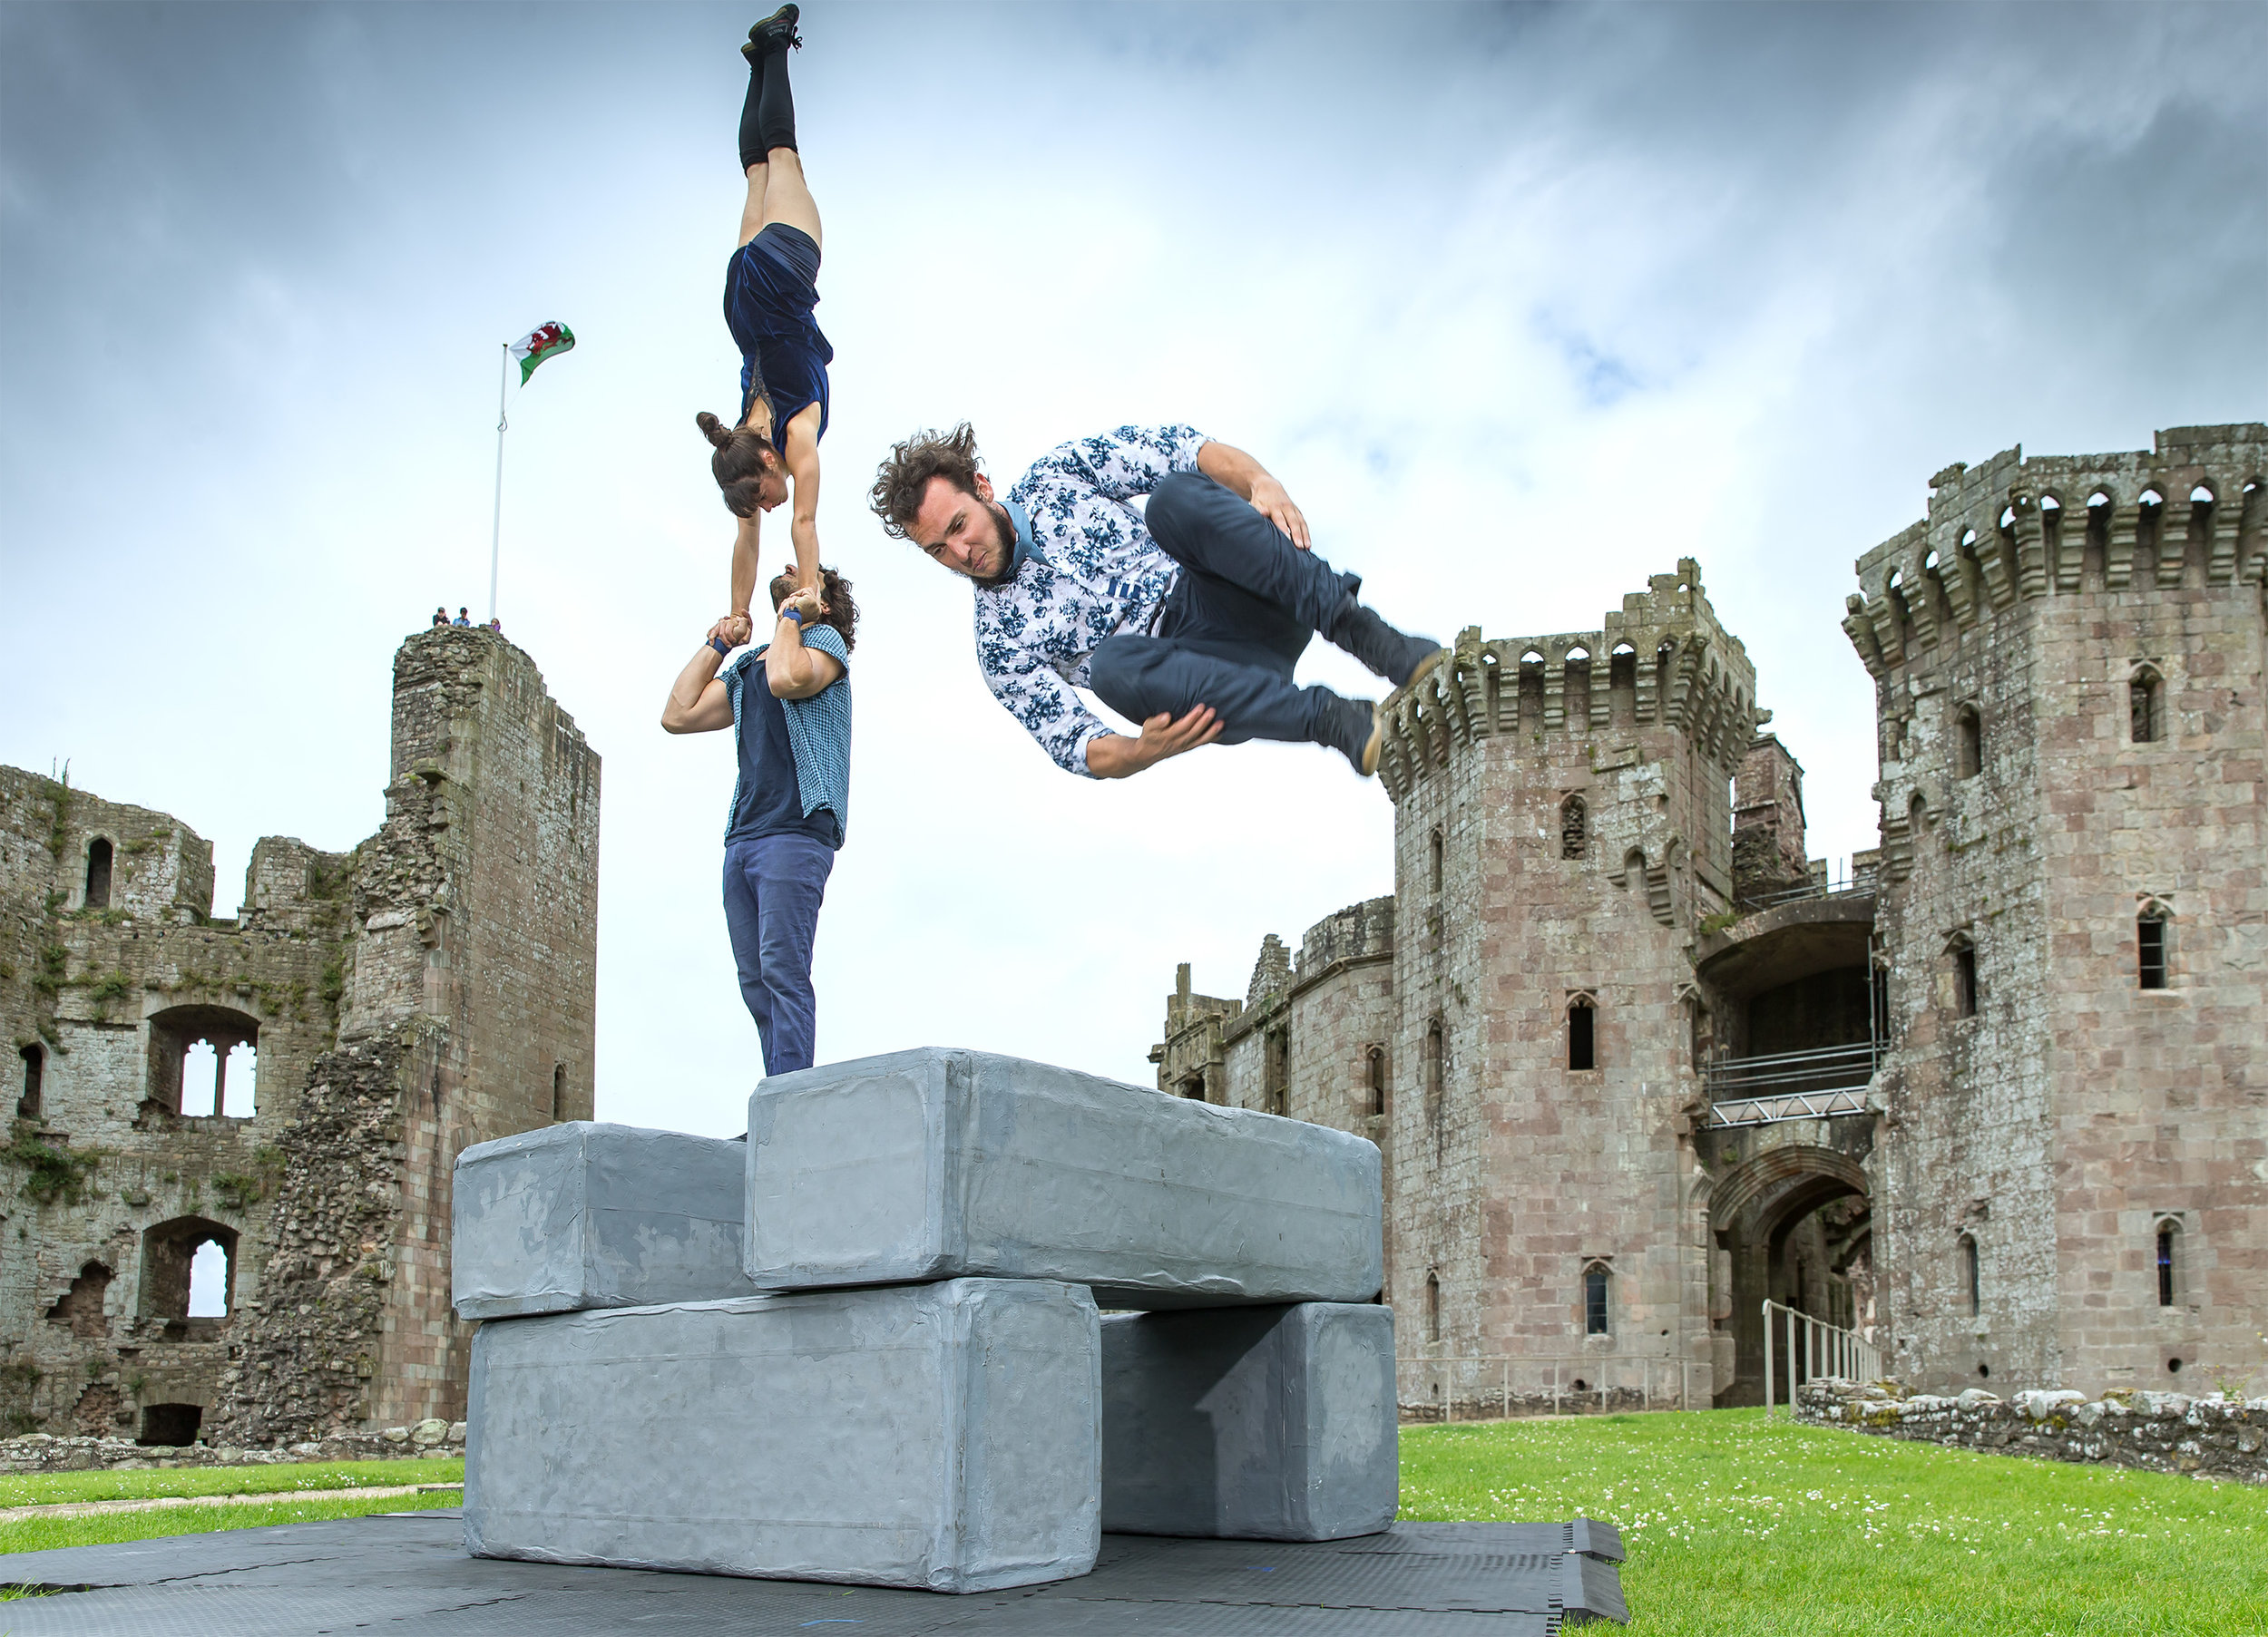 BLOCK performed at Caerphilly Castle in Wales, image credit Patrick Olner Tall and Short Photography.jpg